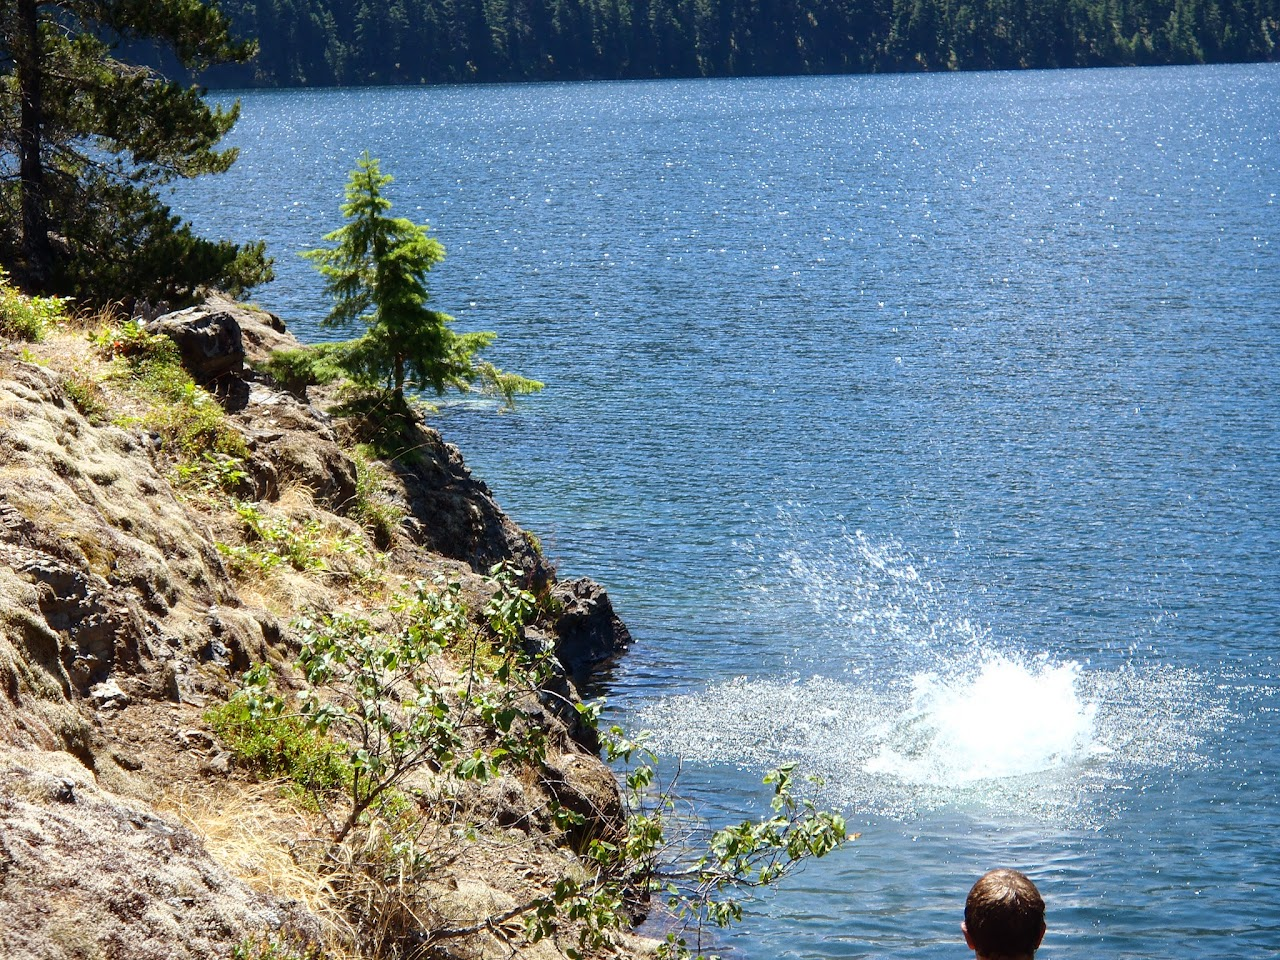 Ross Lake July 2014 - P7080082.JPG